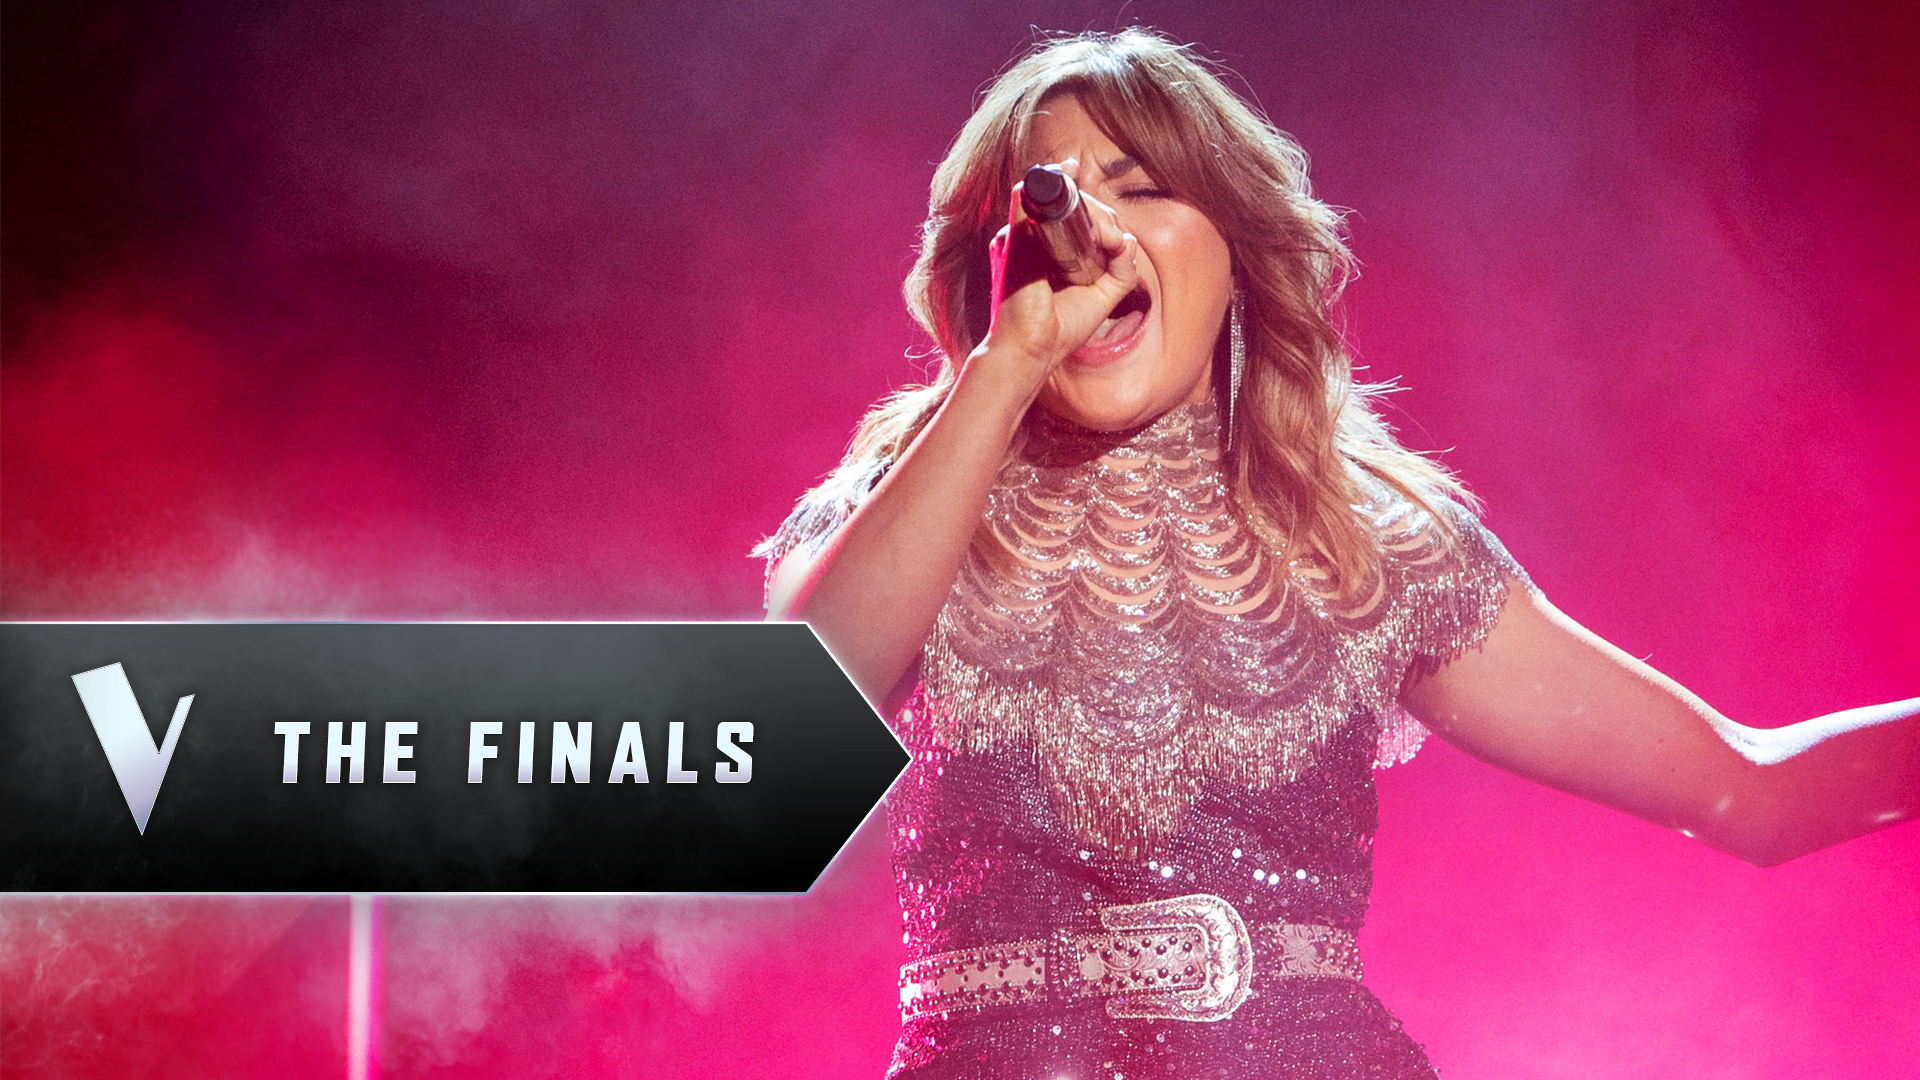 The Finals: Chynna Taylor 'Alone'